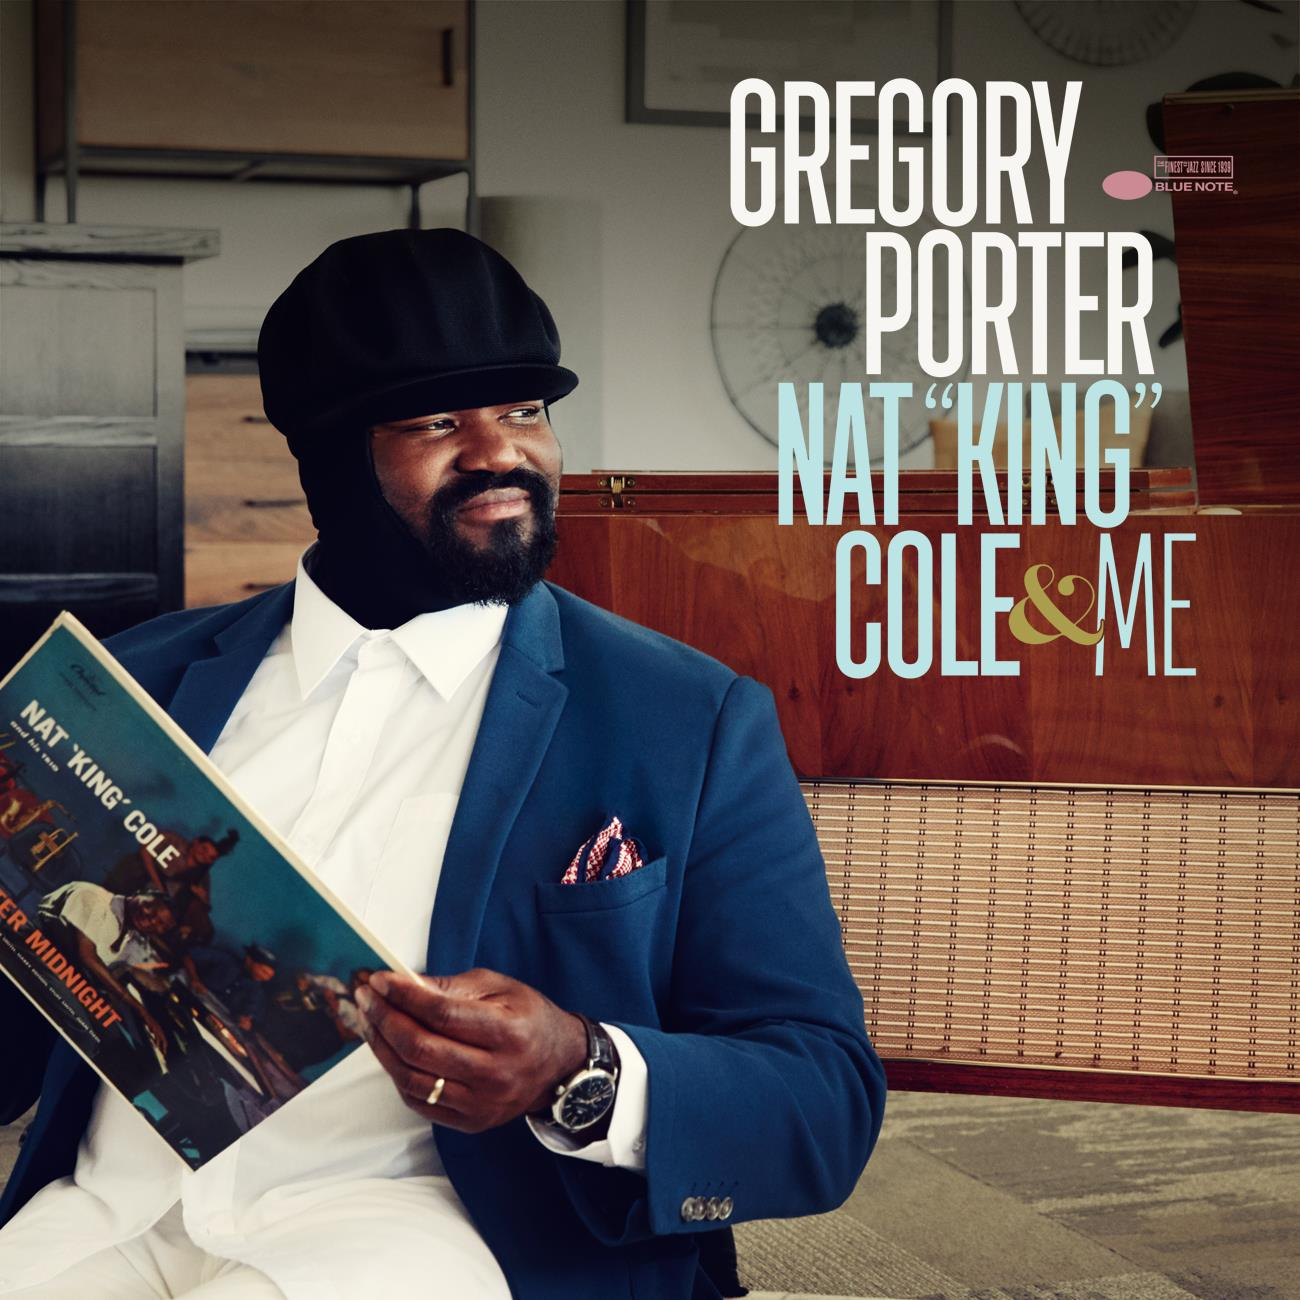 gregory-porter-nat-king-cole-and-me-cover.jpg